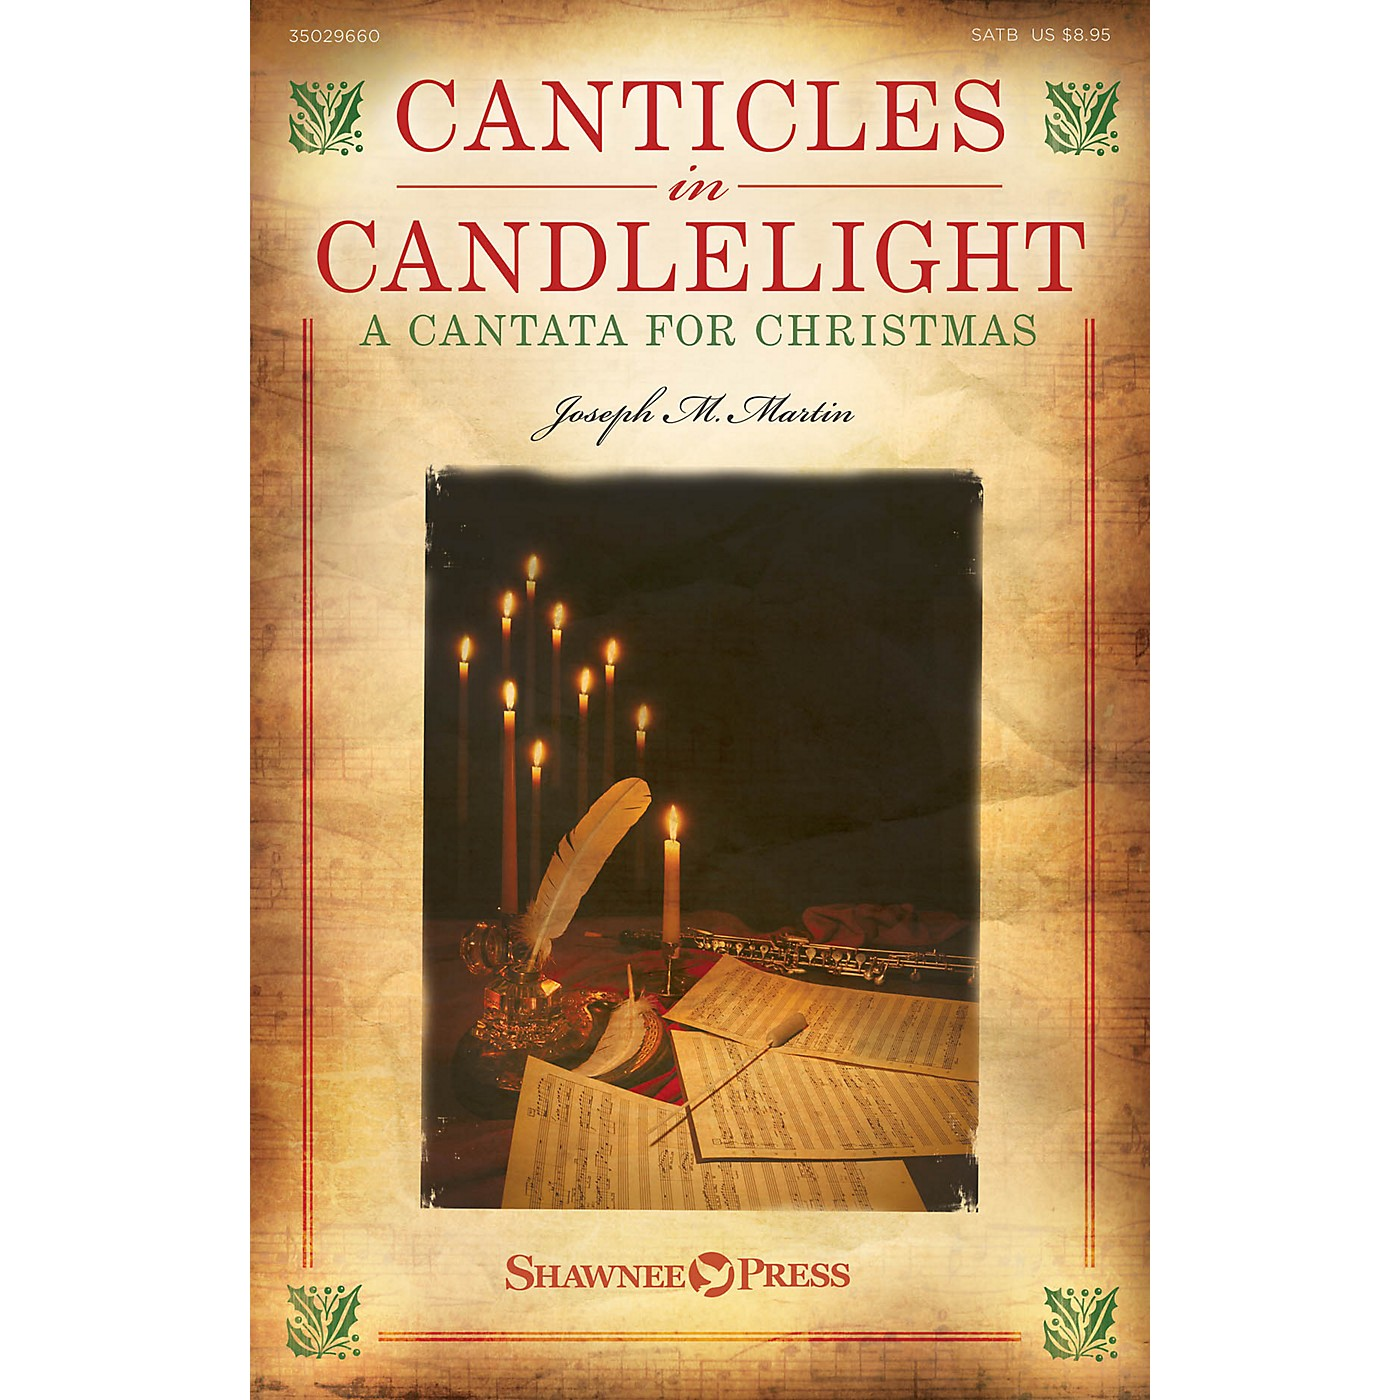 Shawnee Press Canticles in Candlelight (A Cantata for Christmas) CHAMBER ORCHESTRA ACCOMP Composed by Joseph M. Martin thumbnail